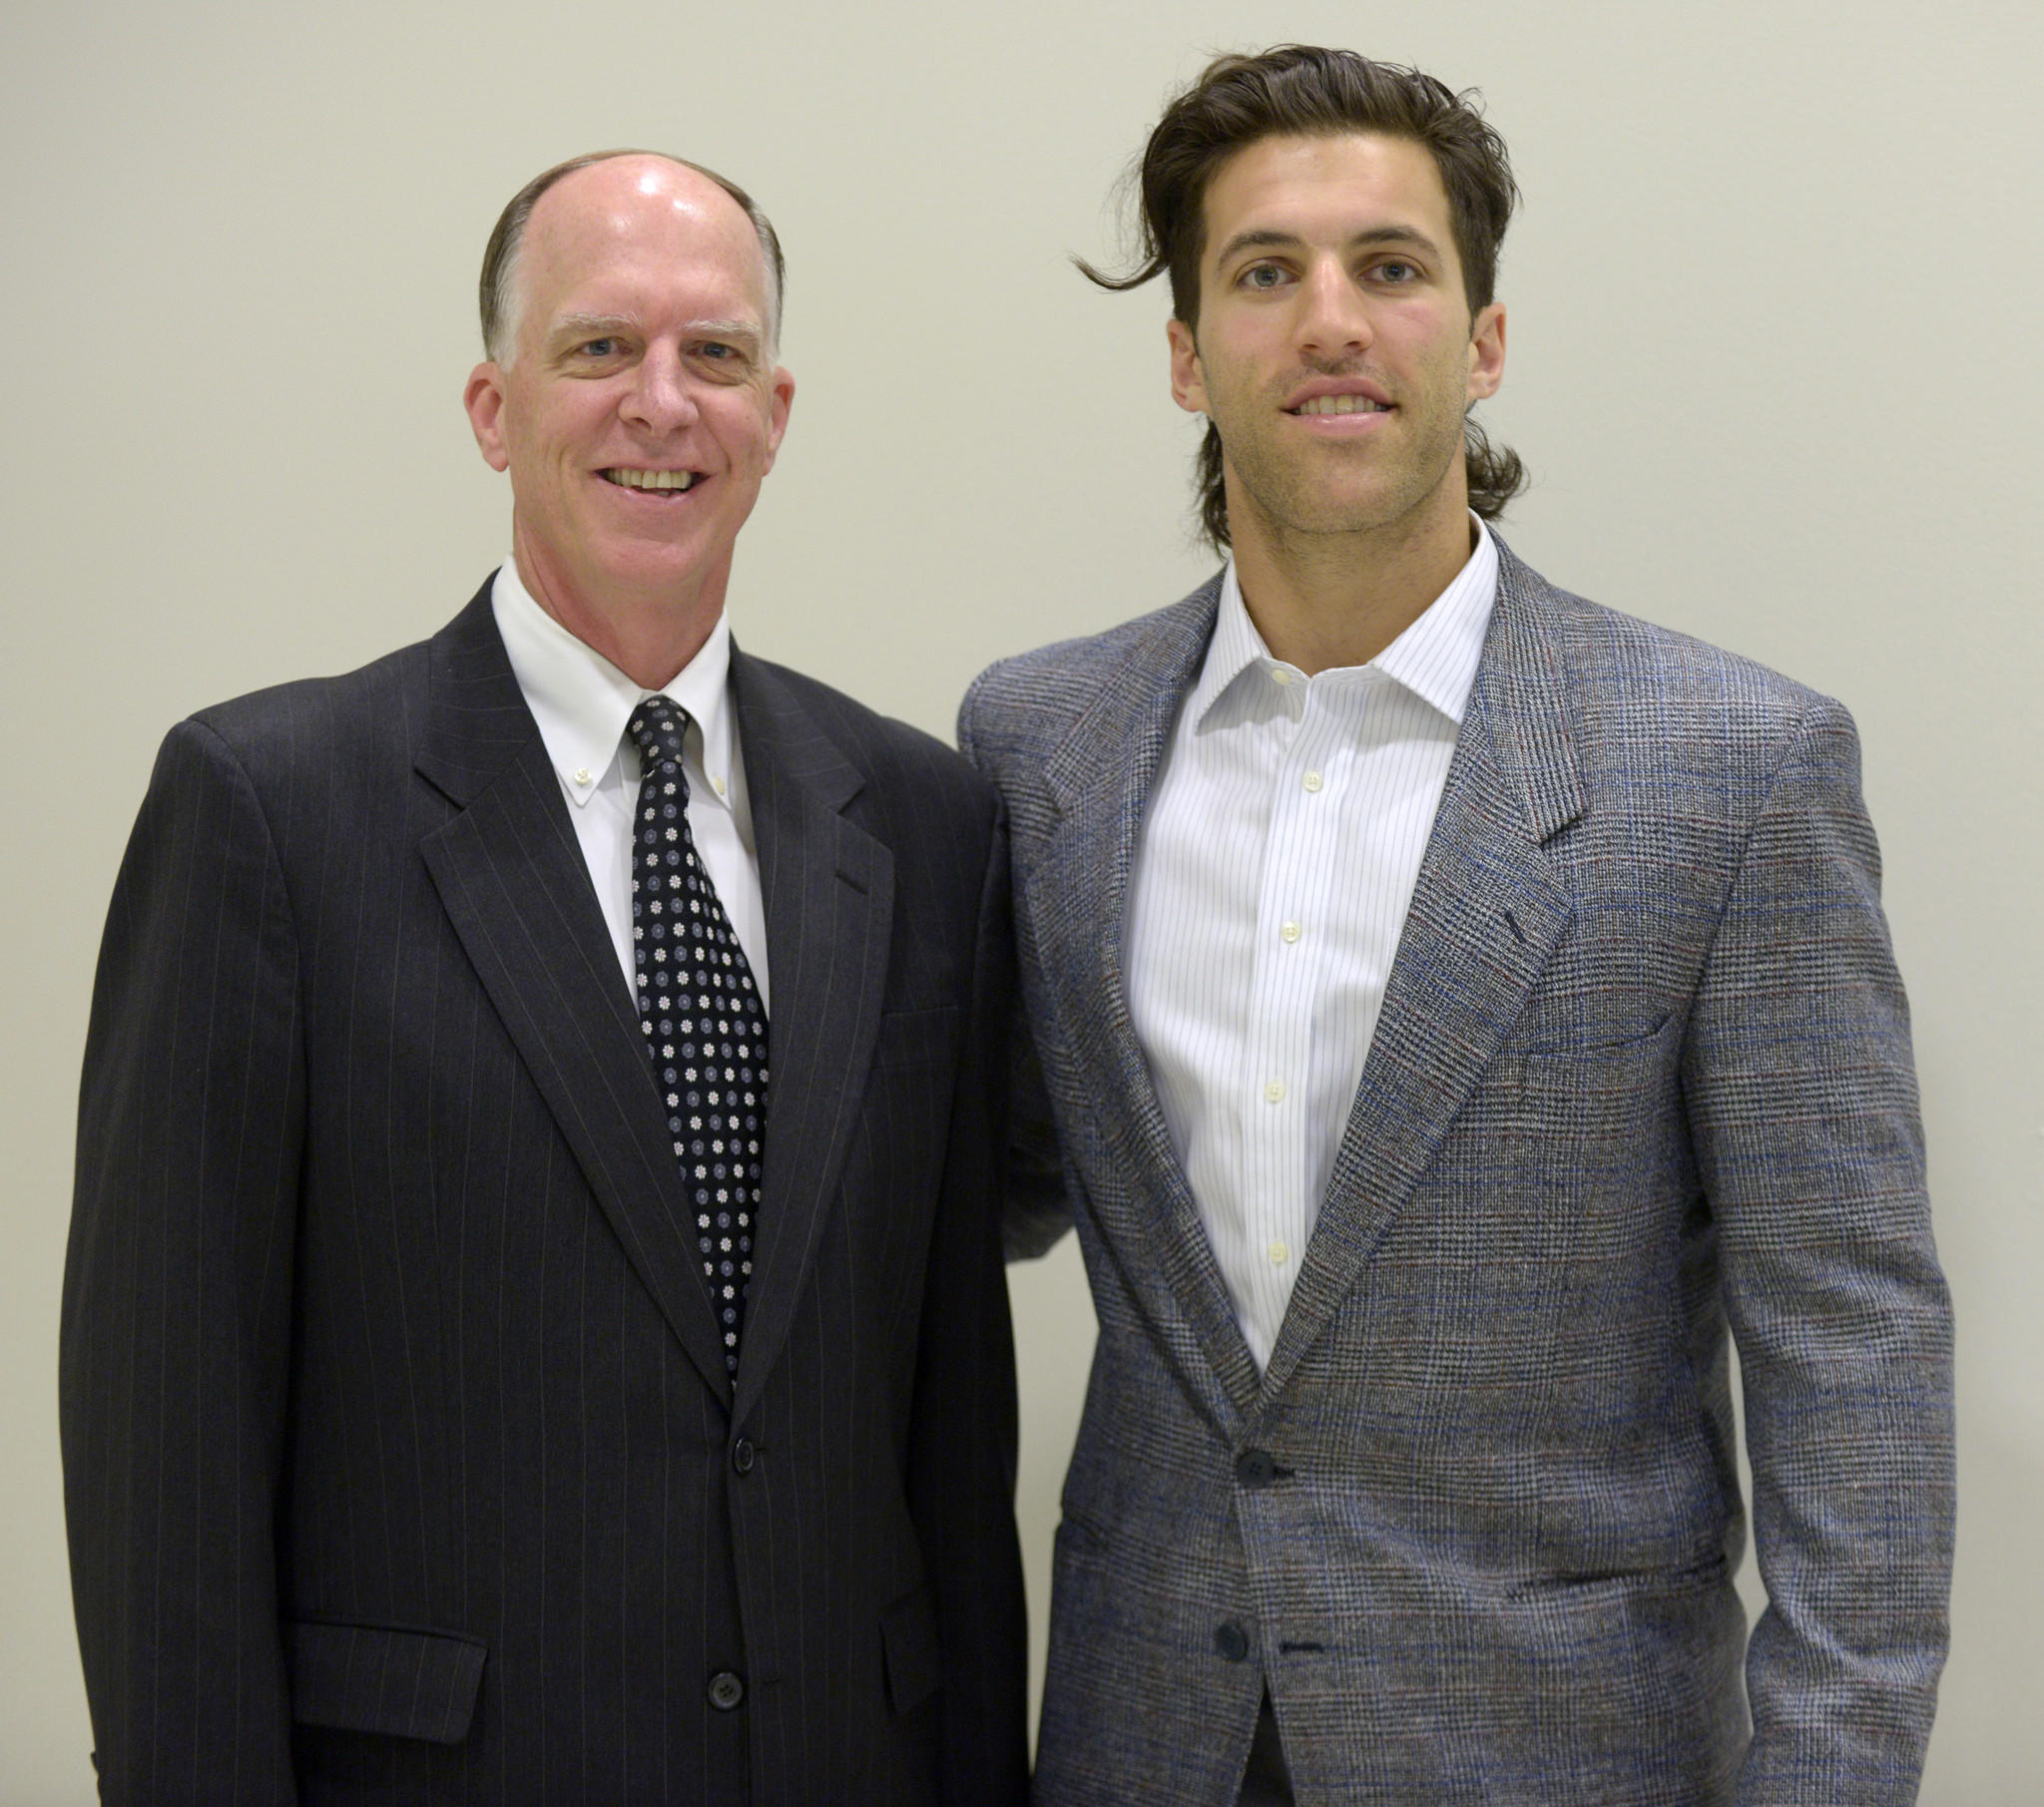 Paul Rabil, right, with Tim Ryan, publisher of The Baltimore Sun Media Group, at The Baltimore Sun High School Athletes of the Year luncheon.